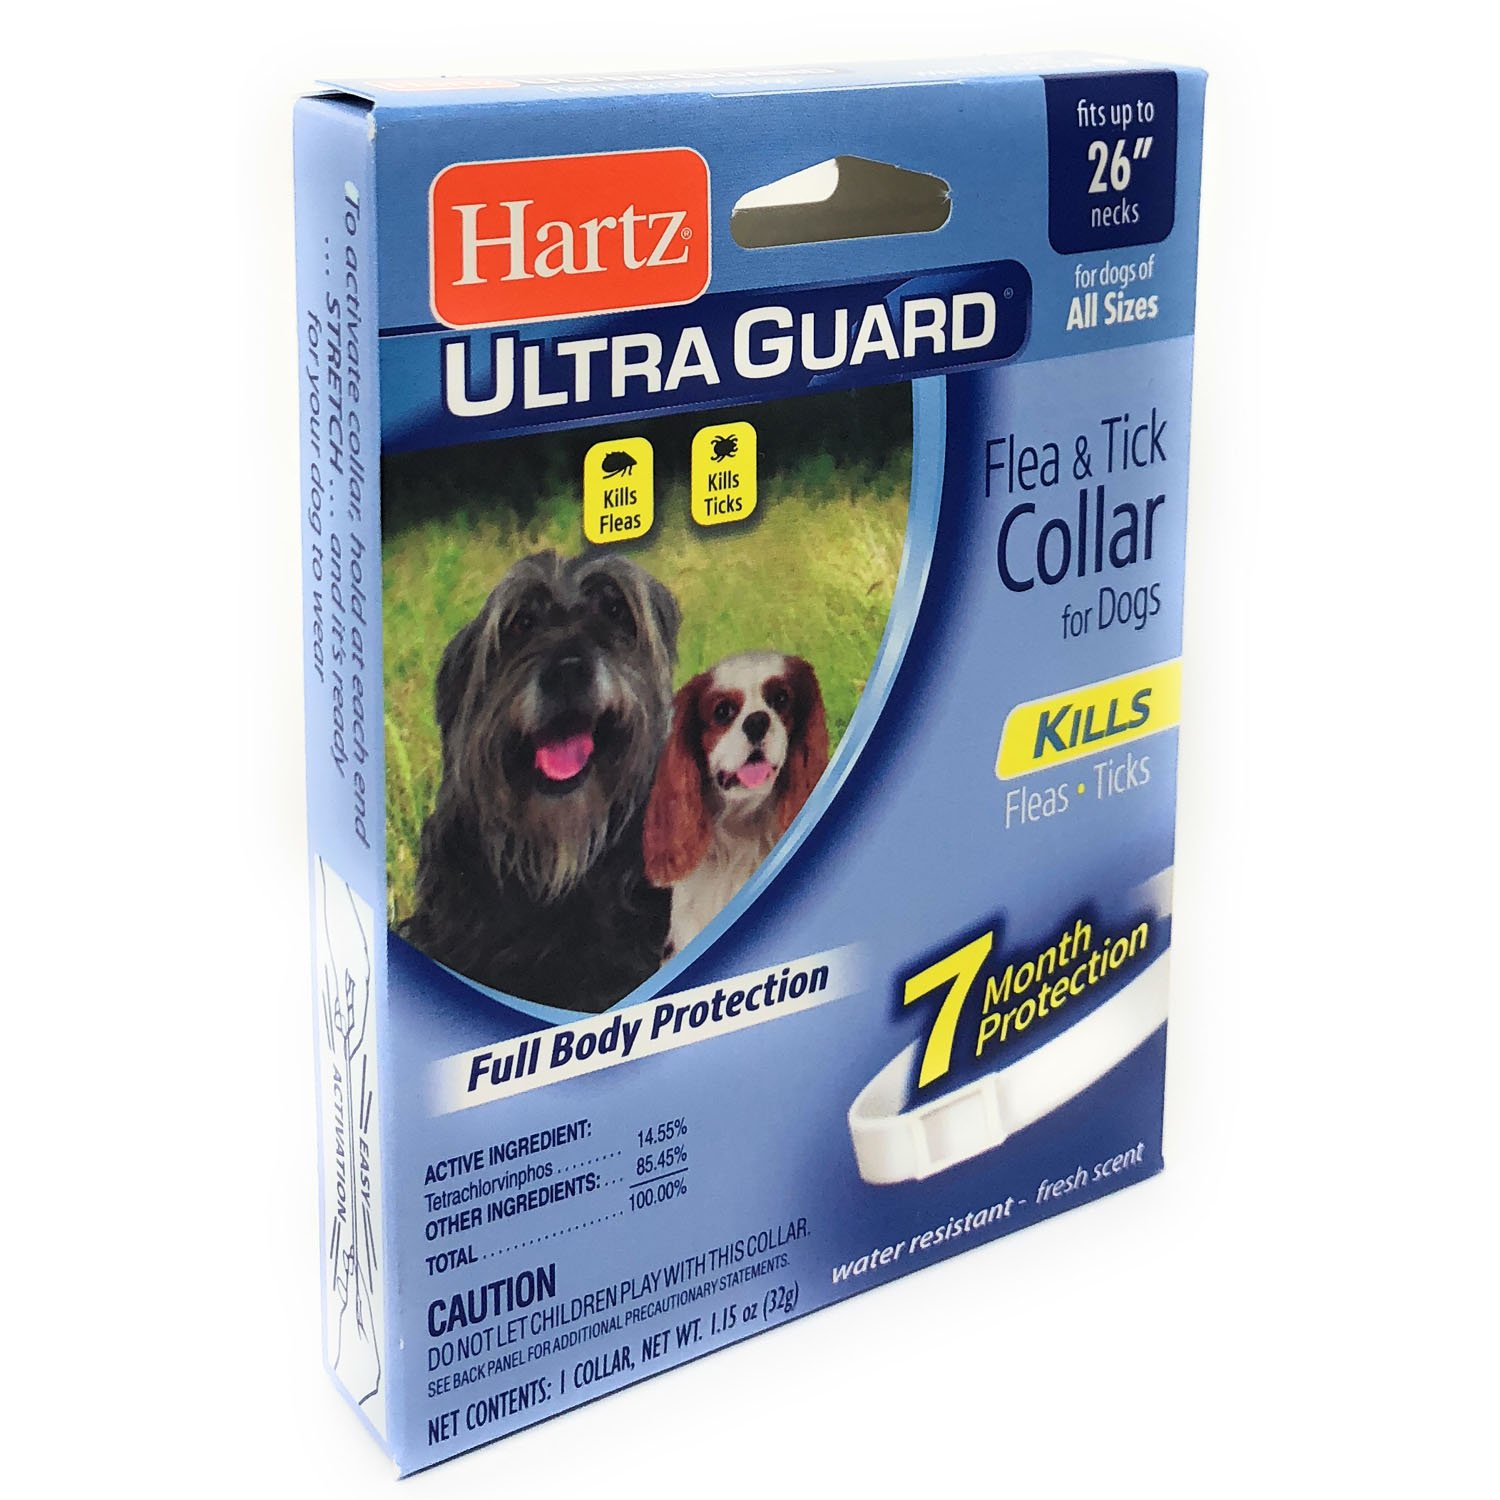 Large Dog Flea and Tick Collar Water Resistant 7 Months Full Body Protection